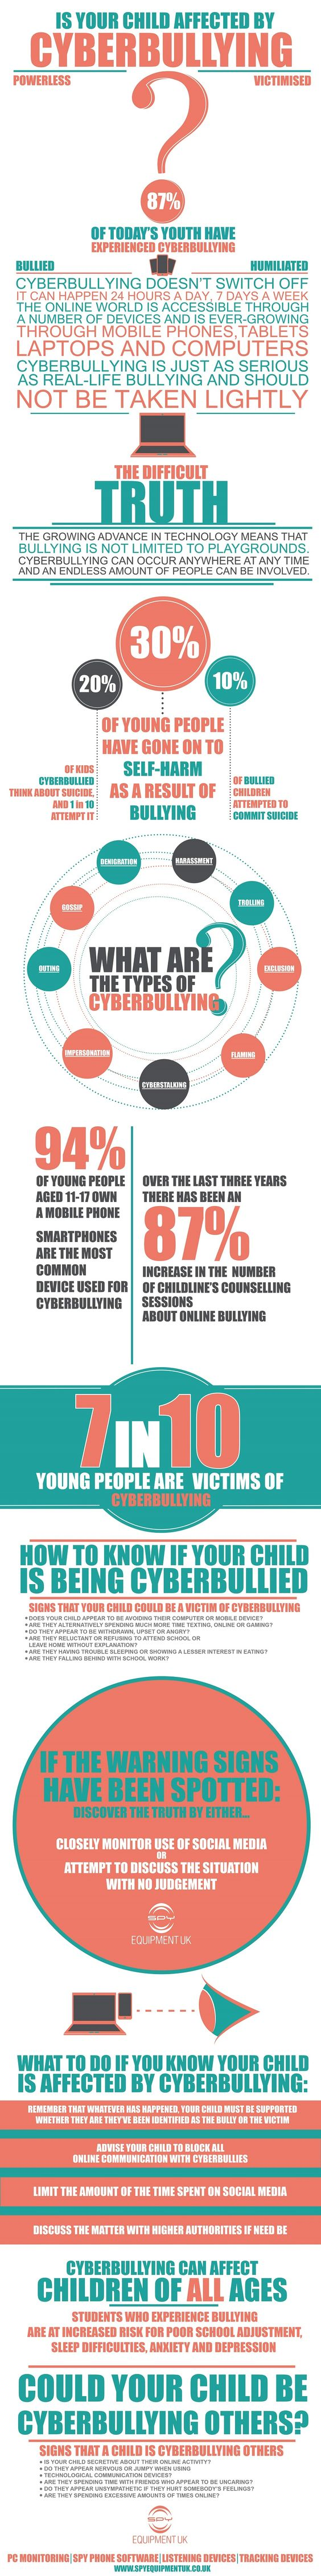 Is Your Child Being Bullied Online? Infographic - http://elearninginfographics.com/is-your-child-being-bullied-online/: